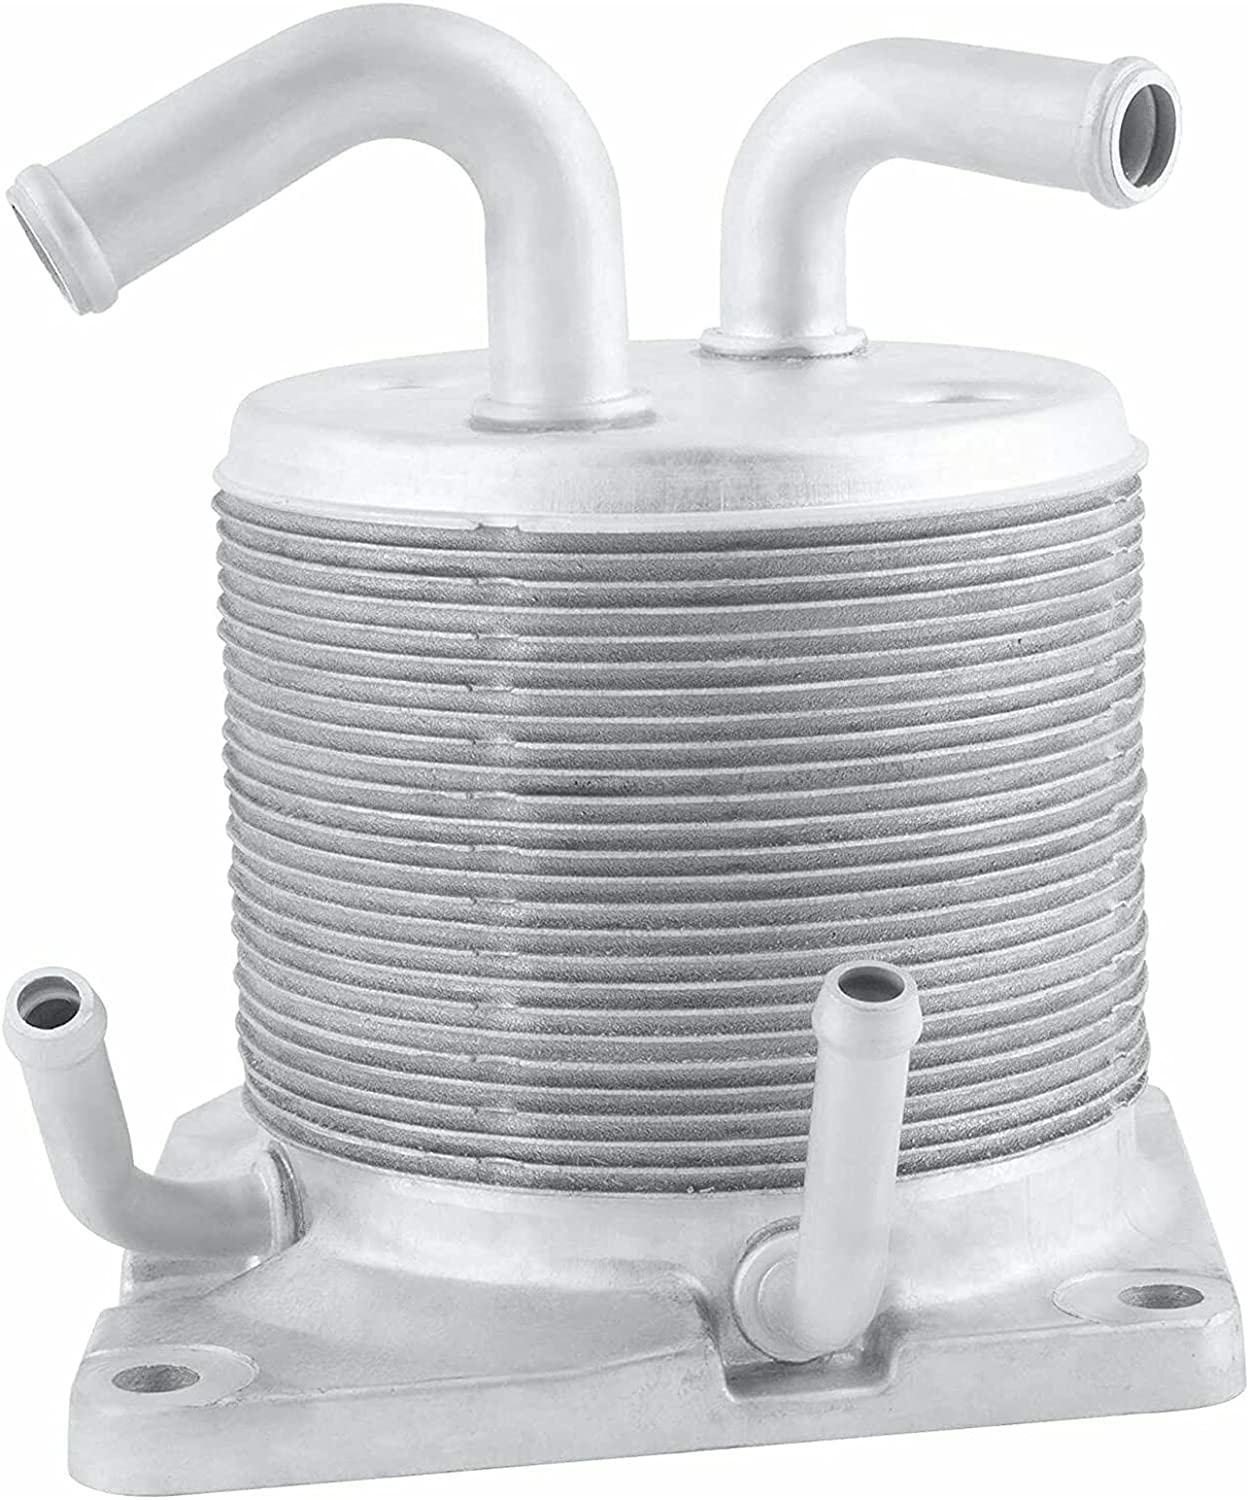 Quality inspection Geofrey Transmission Oil Cooler 21606-1XF0A 216061XF0A Compatibl Baltimore Mall